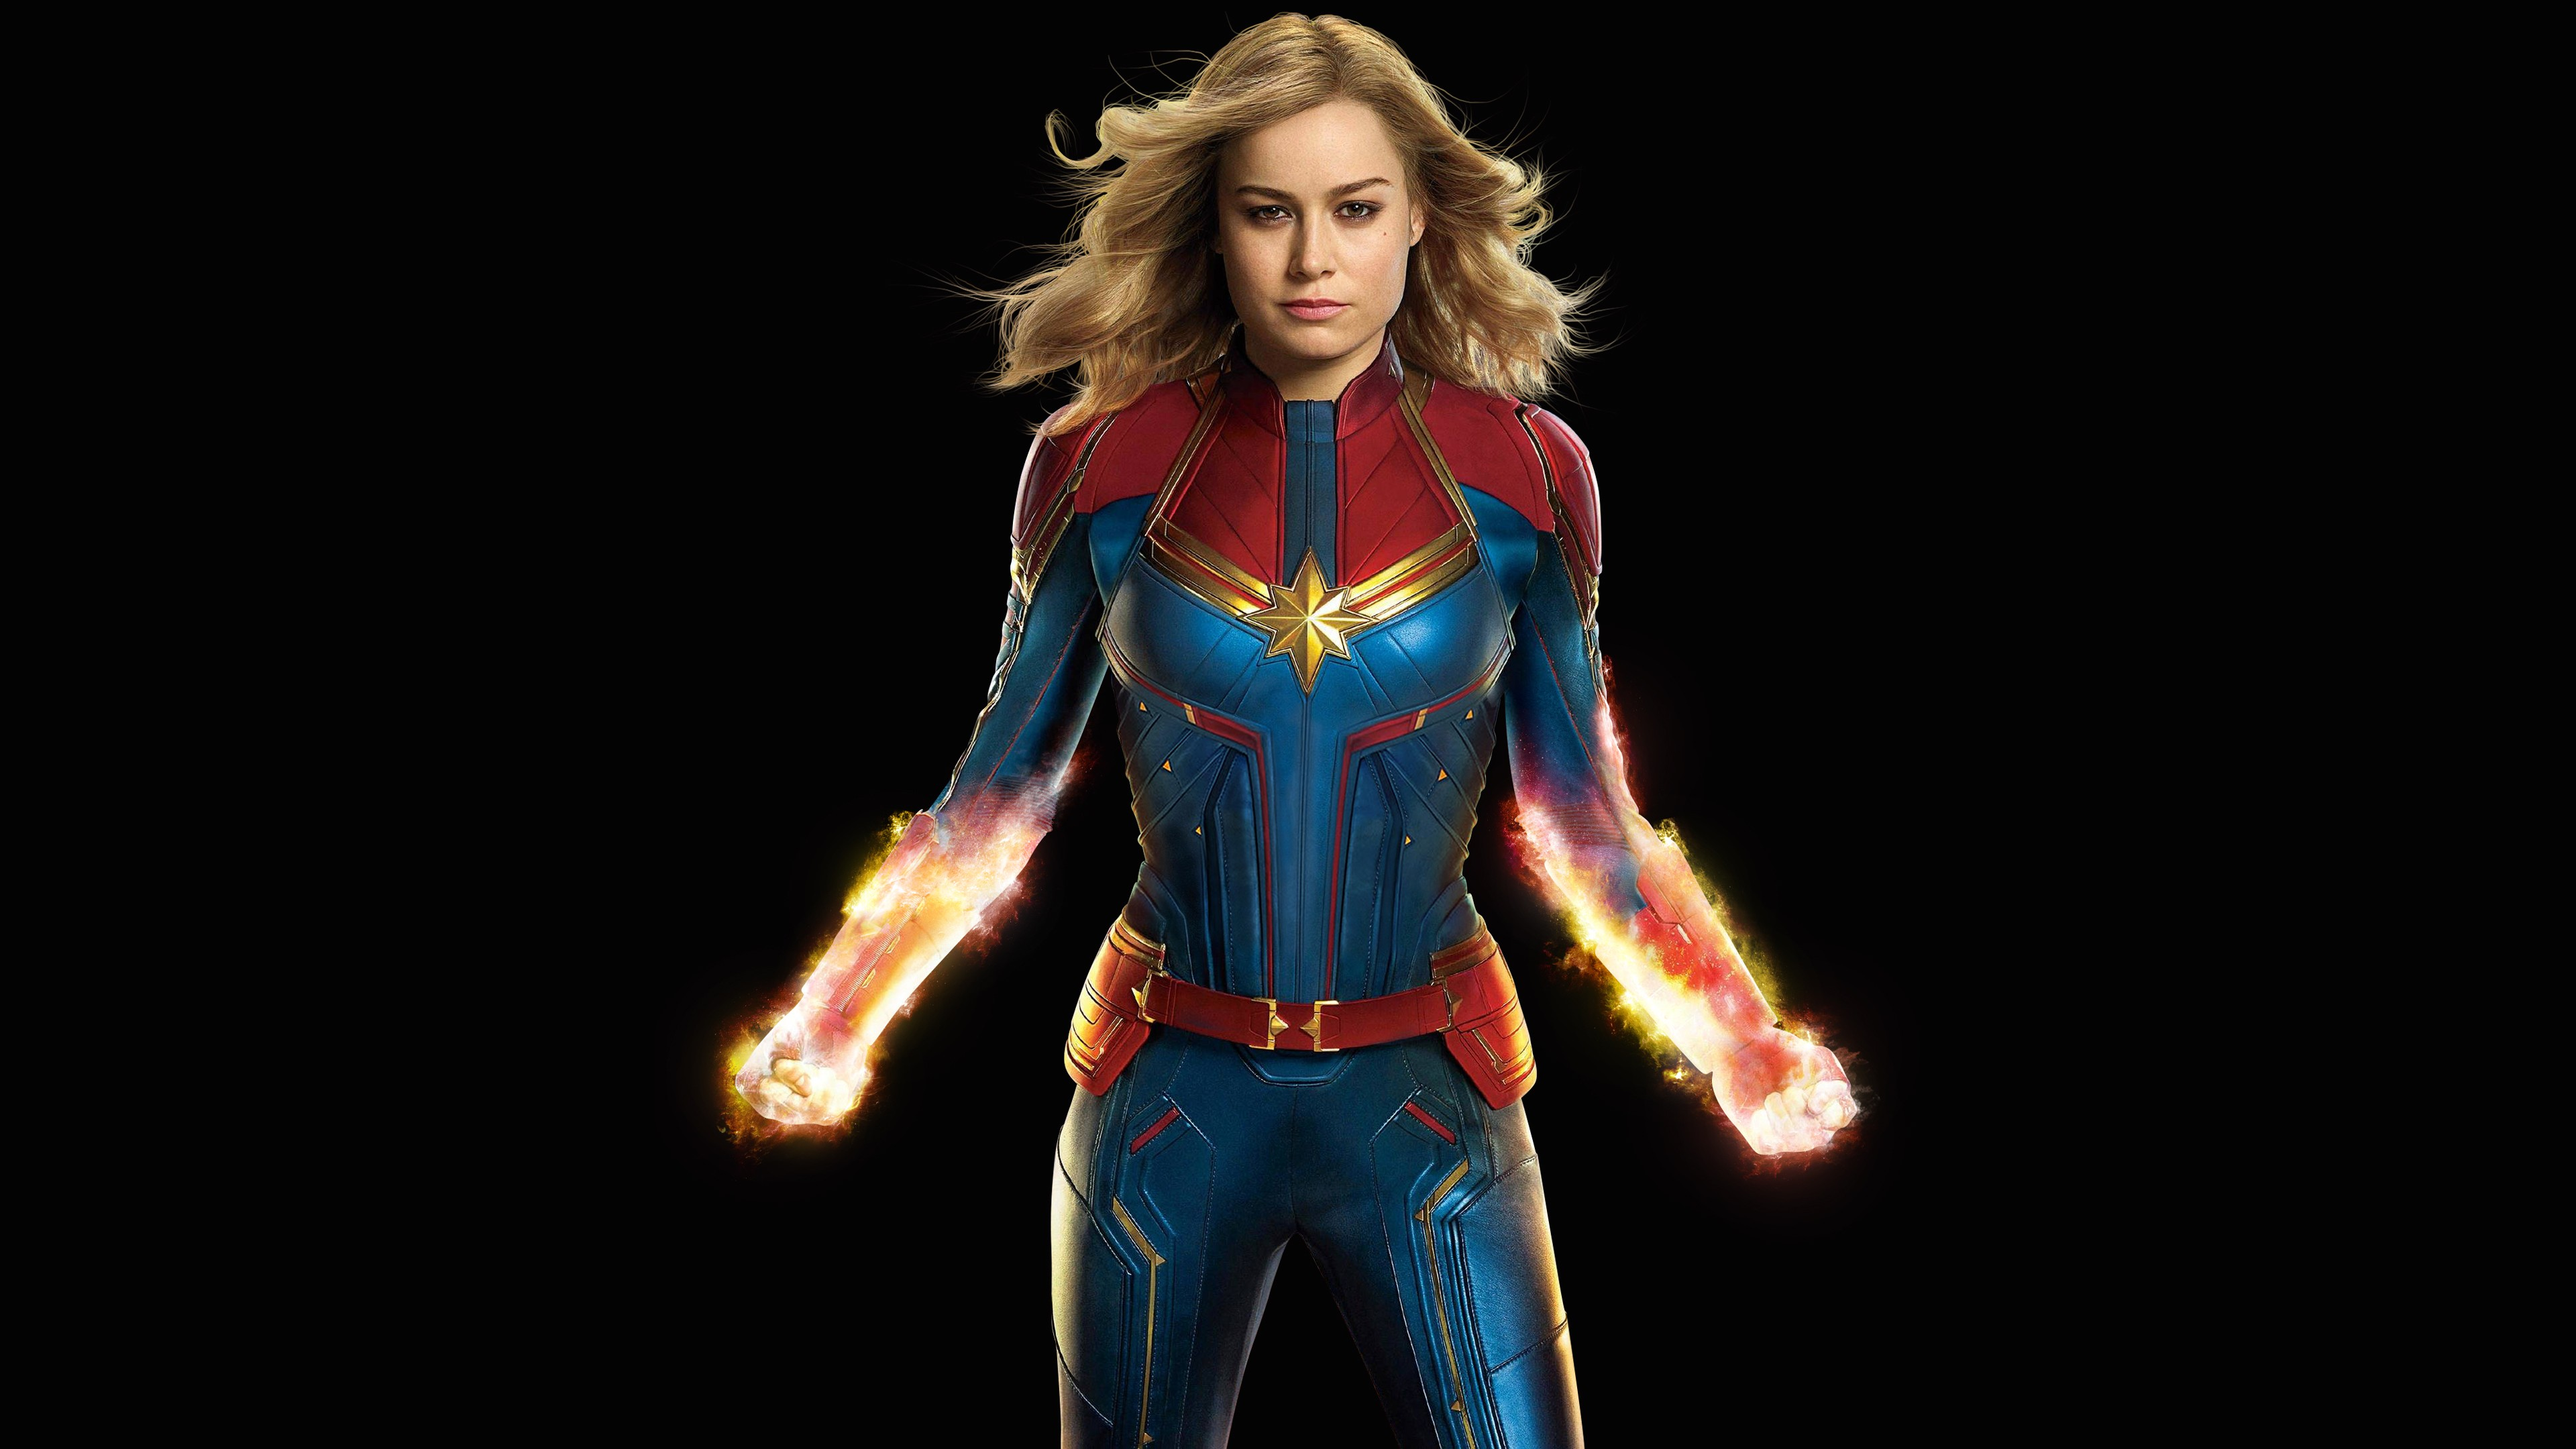 Brie Larson As Captain Marvel Desktop Wallpaper